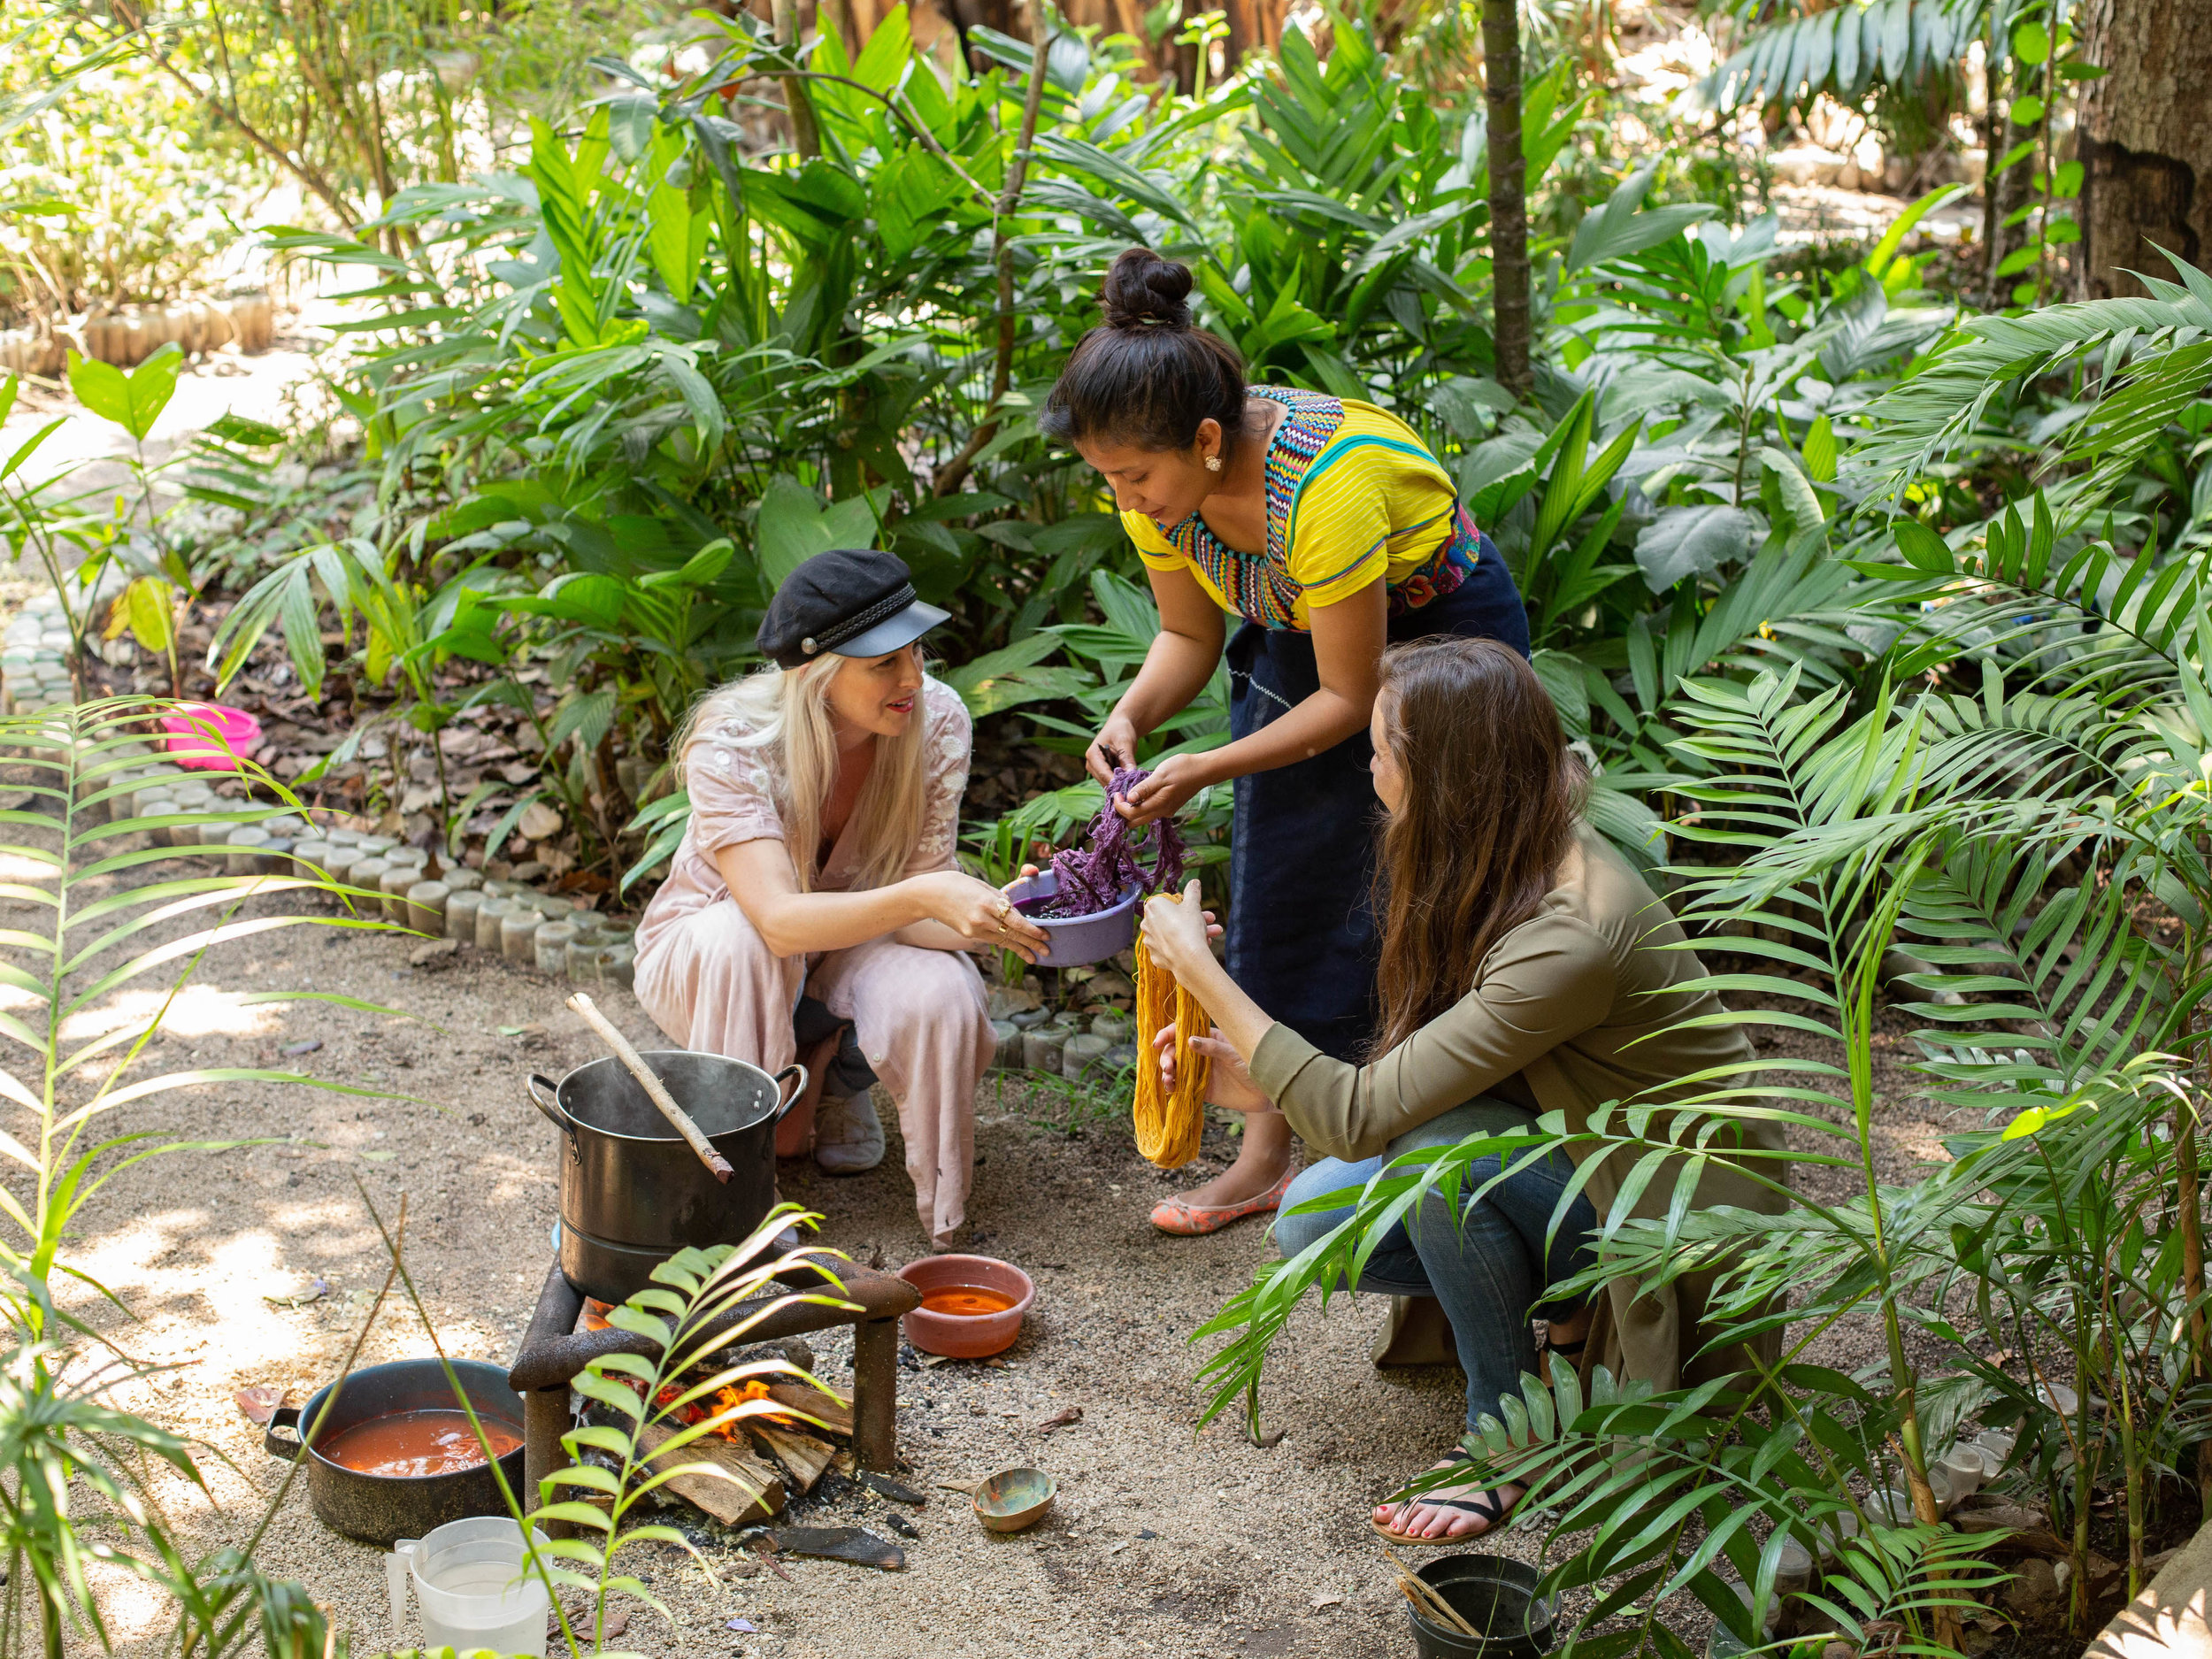 Alyssa and Carina are shown how to harvest plants to be used as all-natural dyes at a female-led textile co-op in San Juan La Laguna, Lake Atitlan, Guatemala